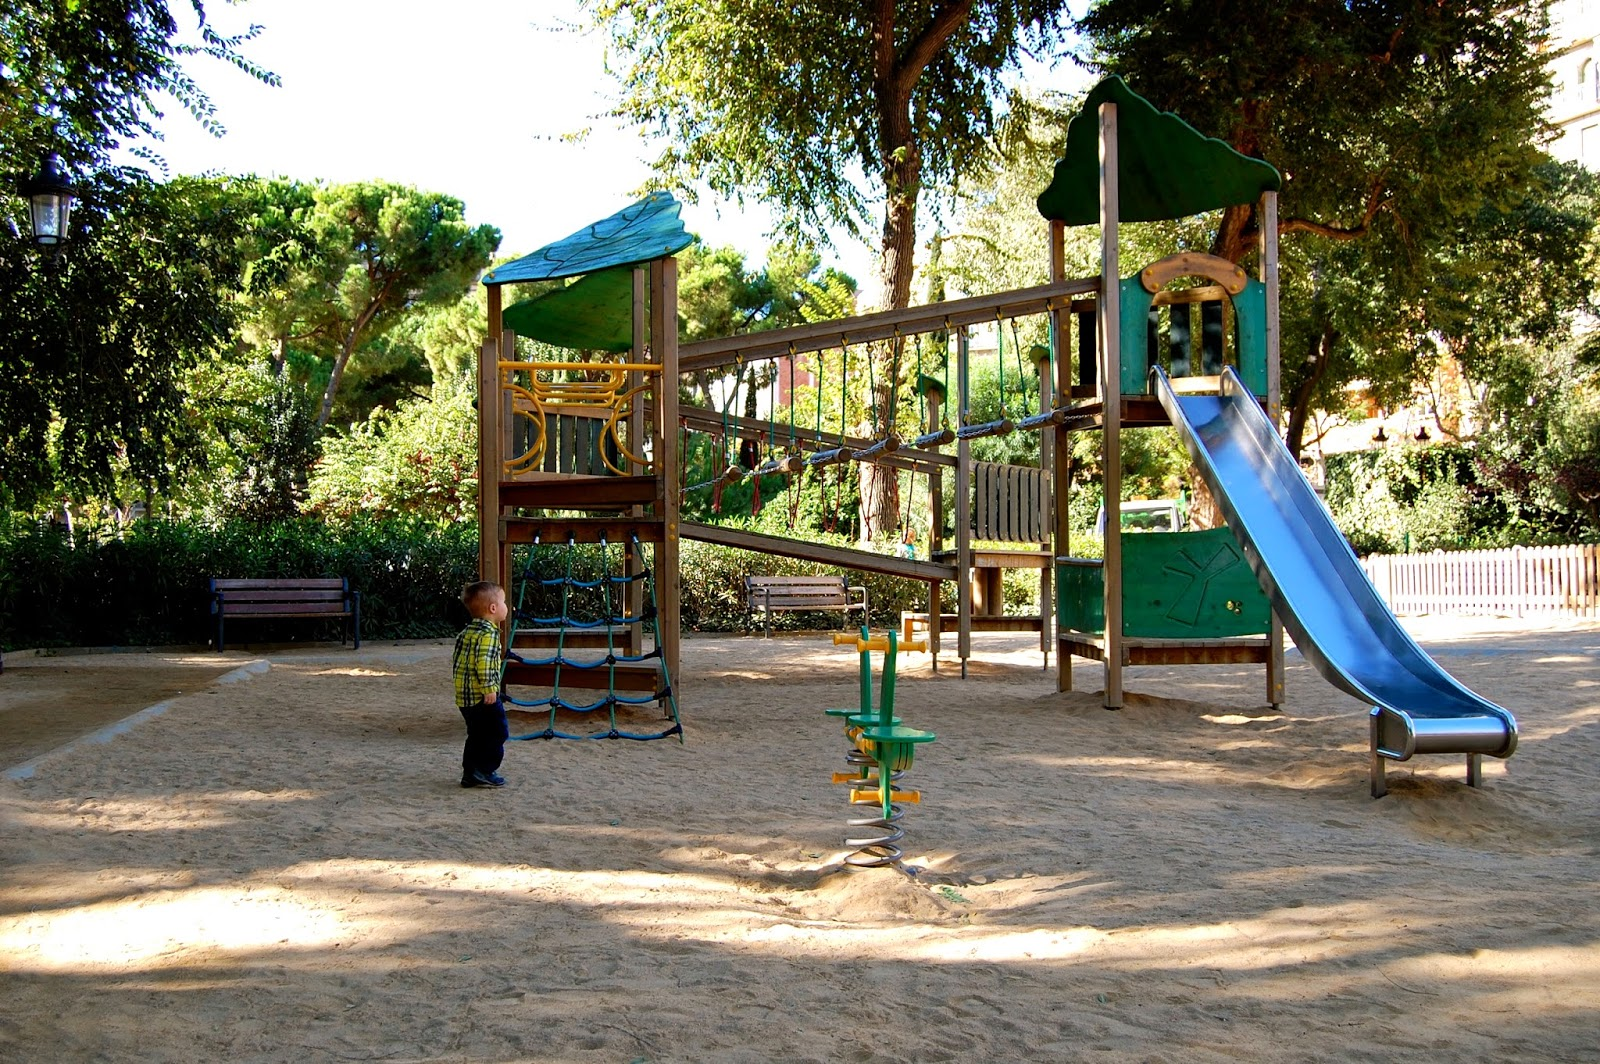 Climbing set in the playground